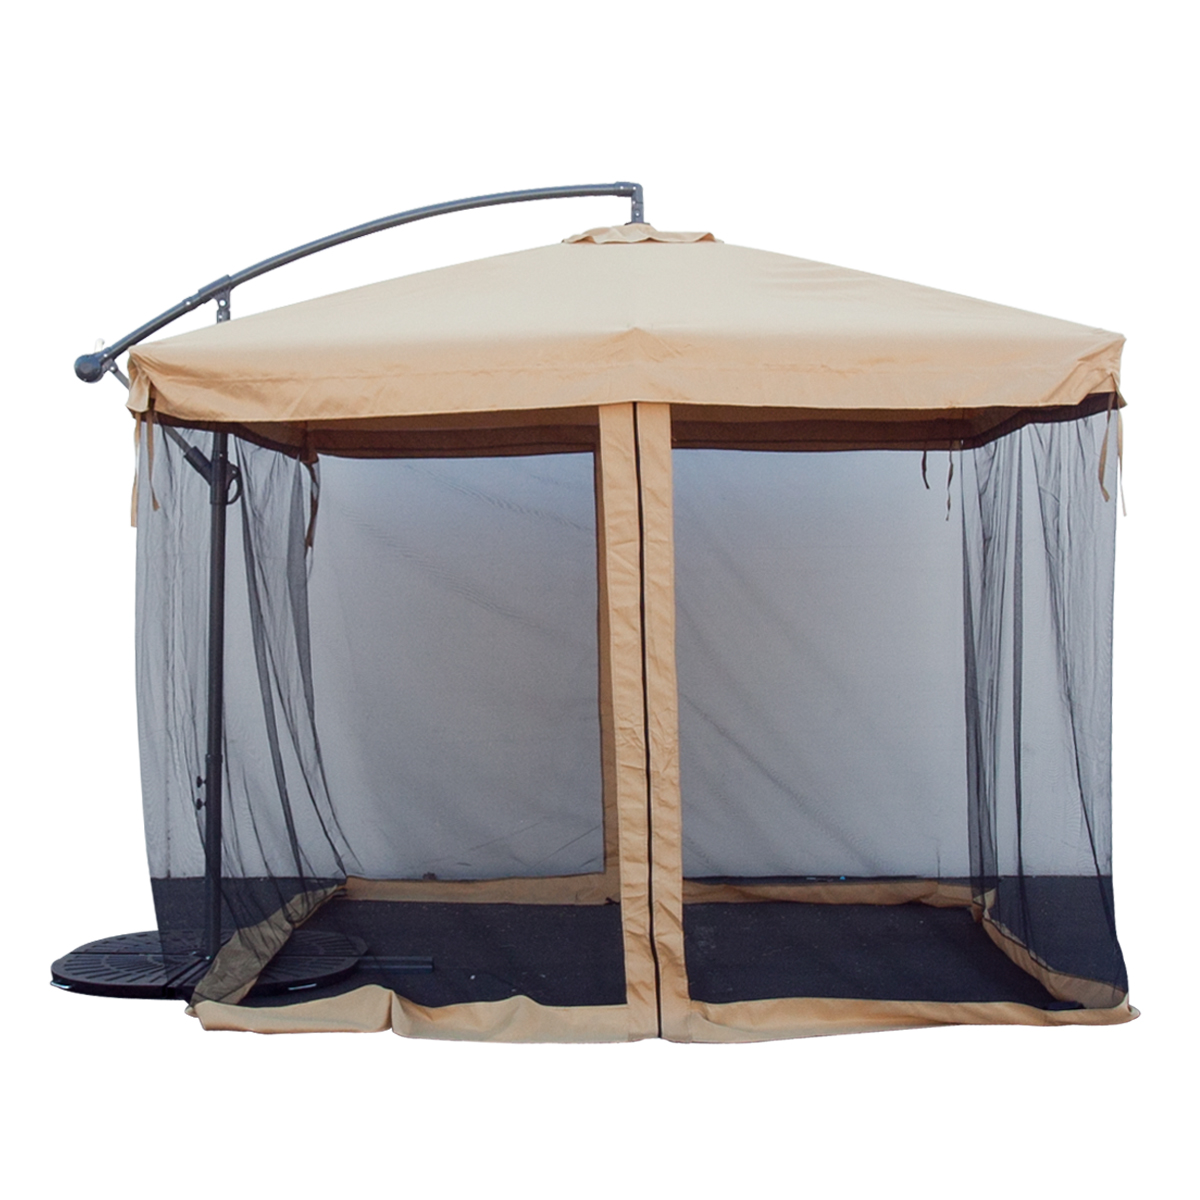 Merveilleux Apontus Offset Tan Patio Umbrella Instant Gazebo With Mesh Netting    Walmart.com